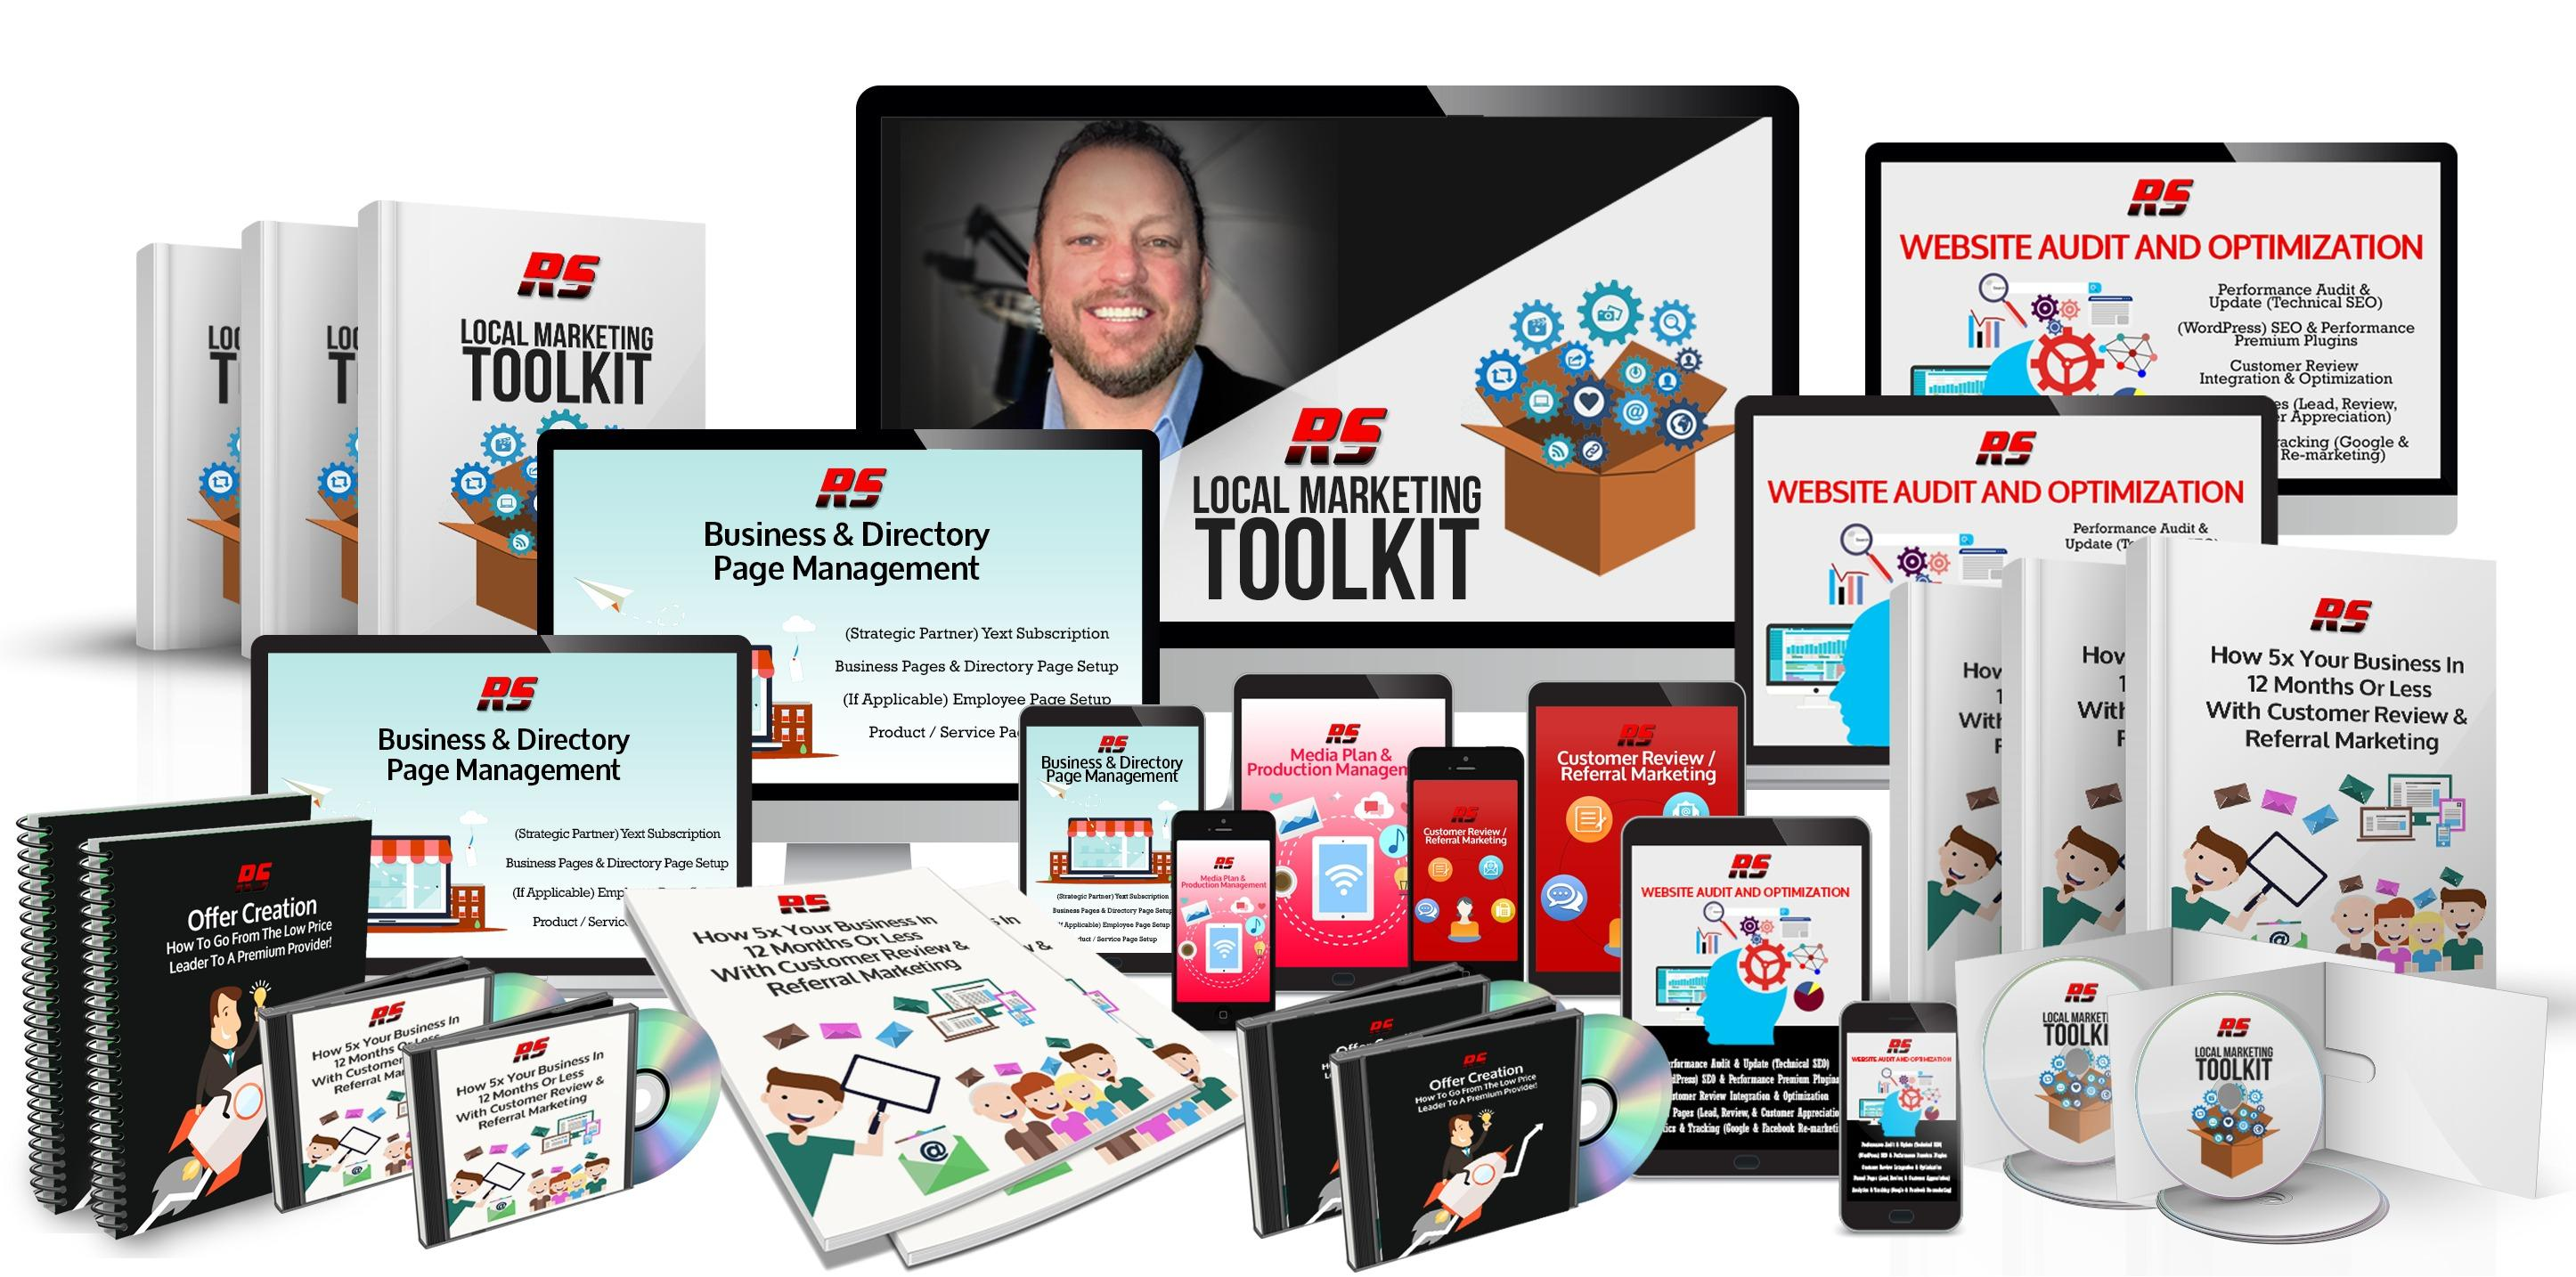 Local Marketing Toolkit - Everything you need to 5x your retail customer base in the next 12 months or less...